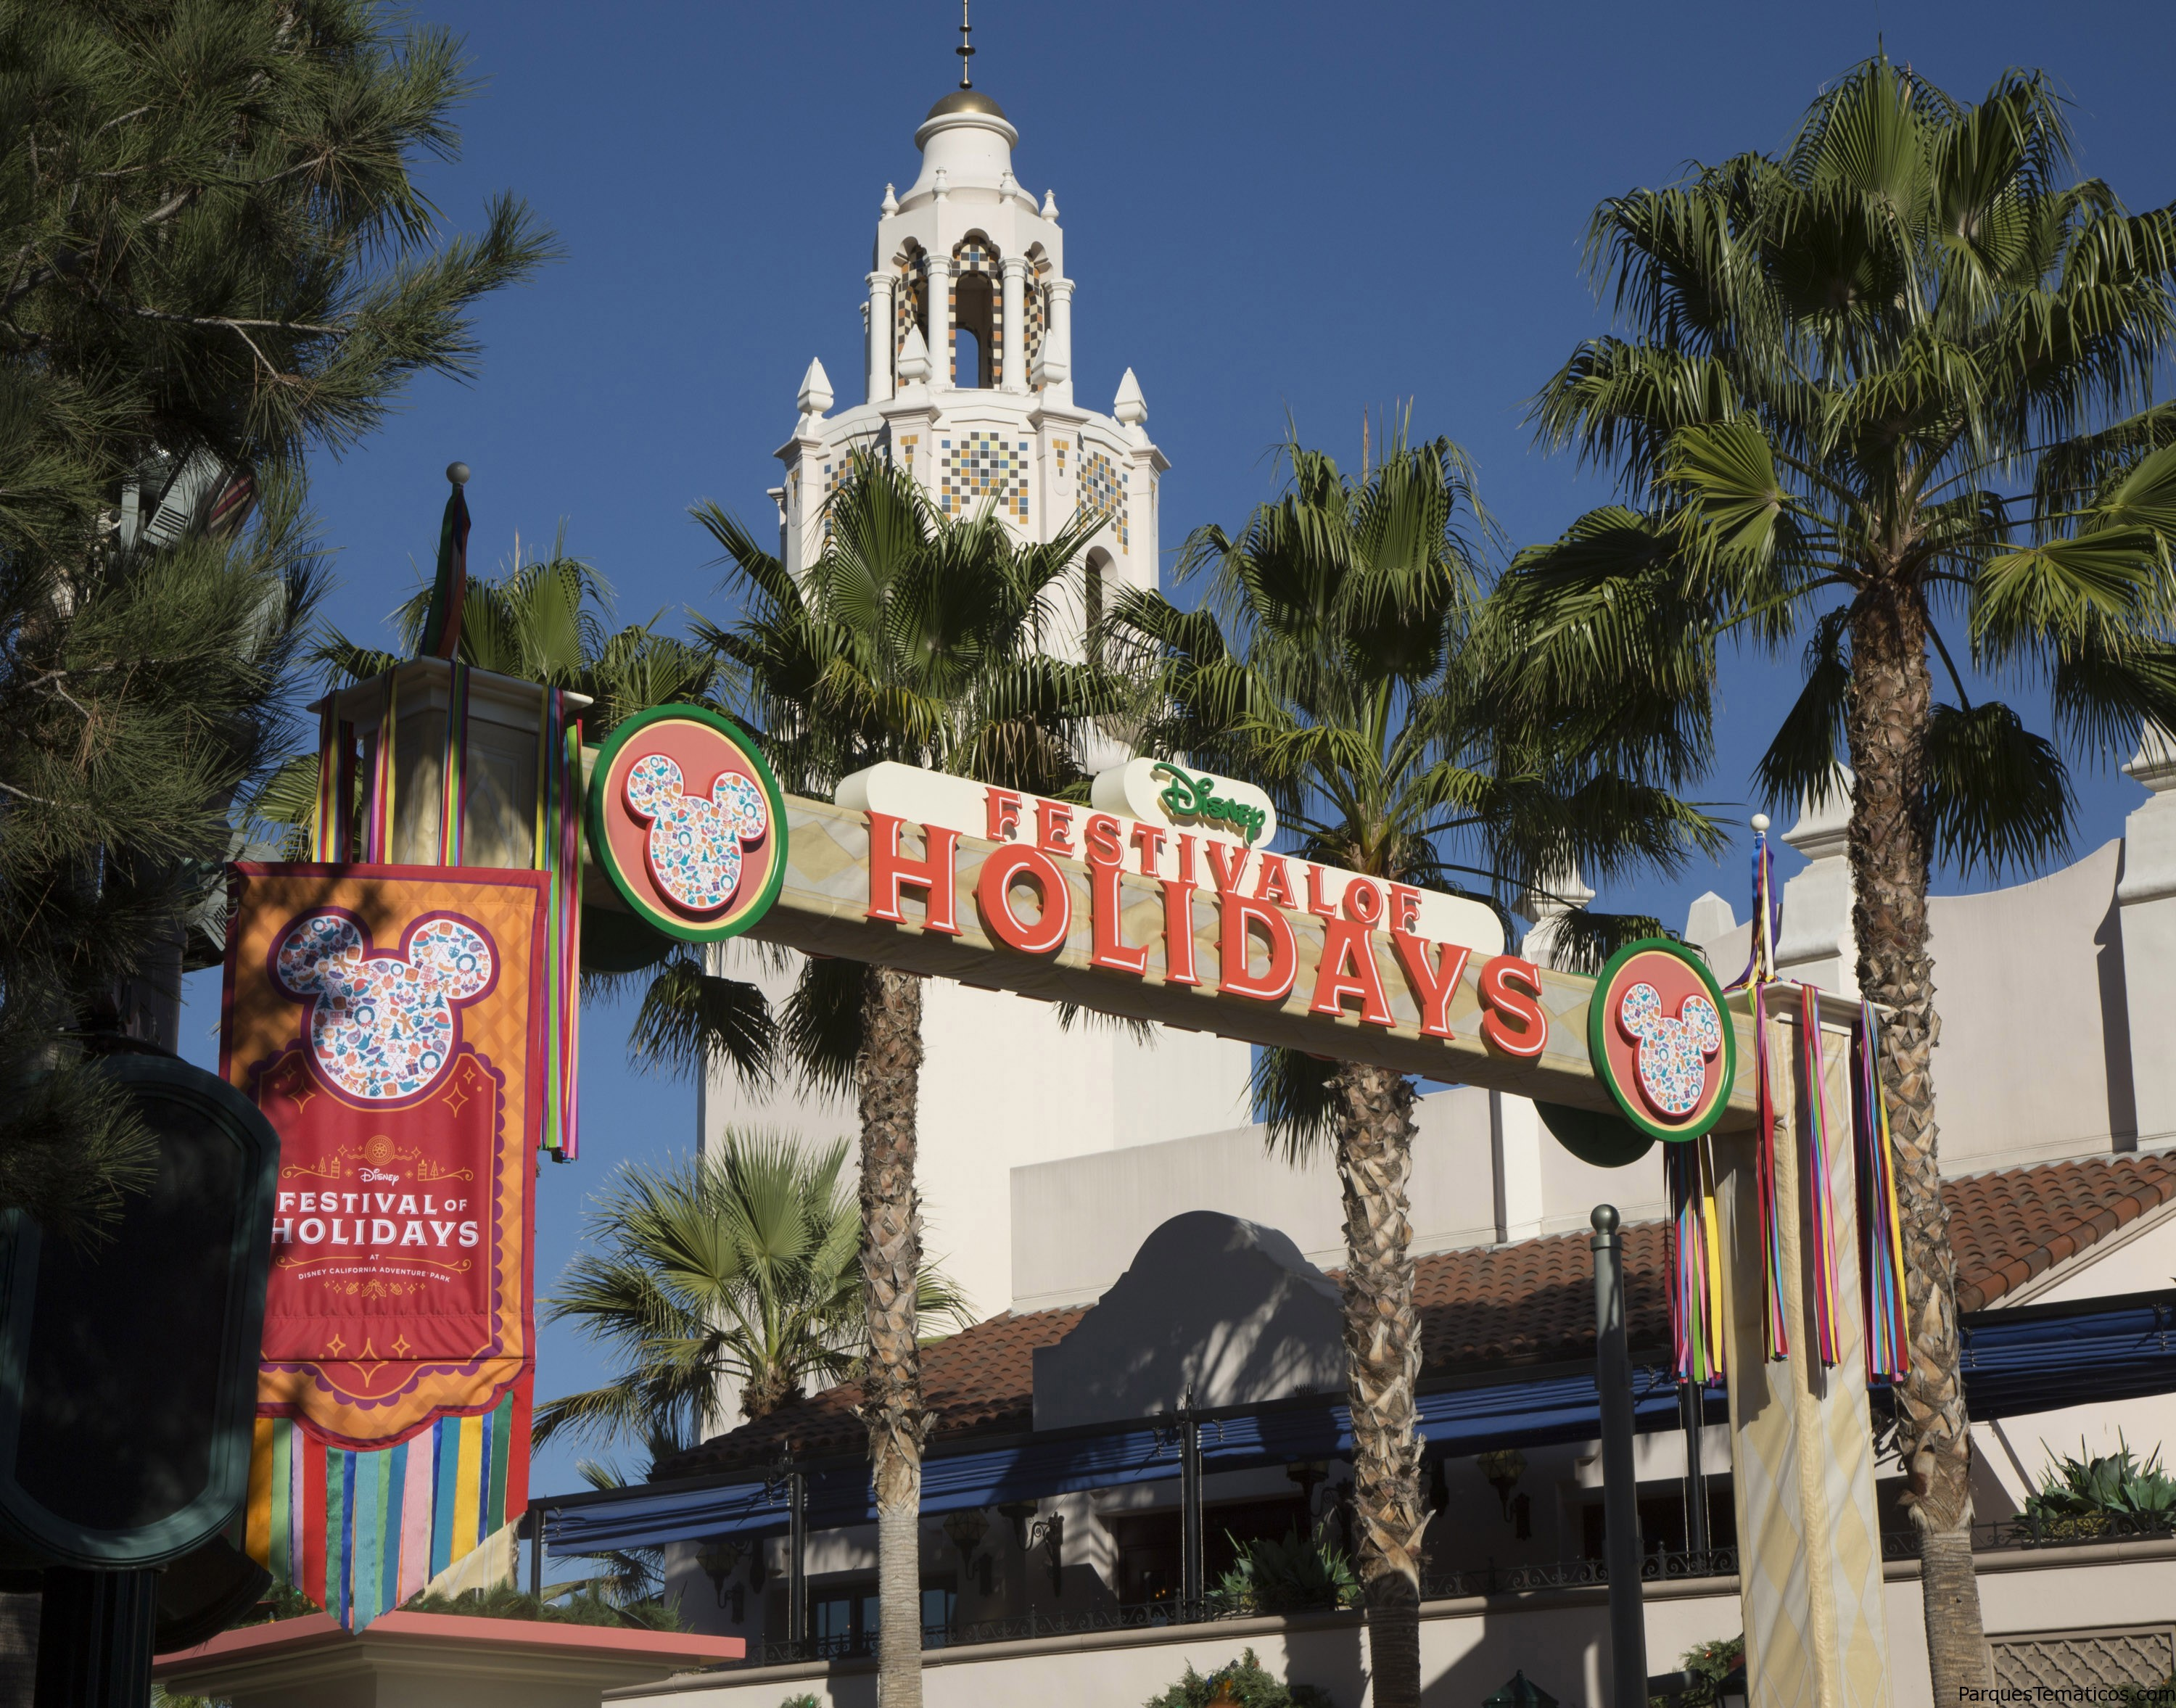 Festival of Holidays at Disney California Adventure park celebrates holiday festivities of diverse cultures with music, dance and craft-making, plus food at the Festive Foods Marketplace. Guests can look for entertainment such as street parties, special Disney characters and musical ensembles